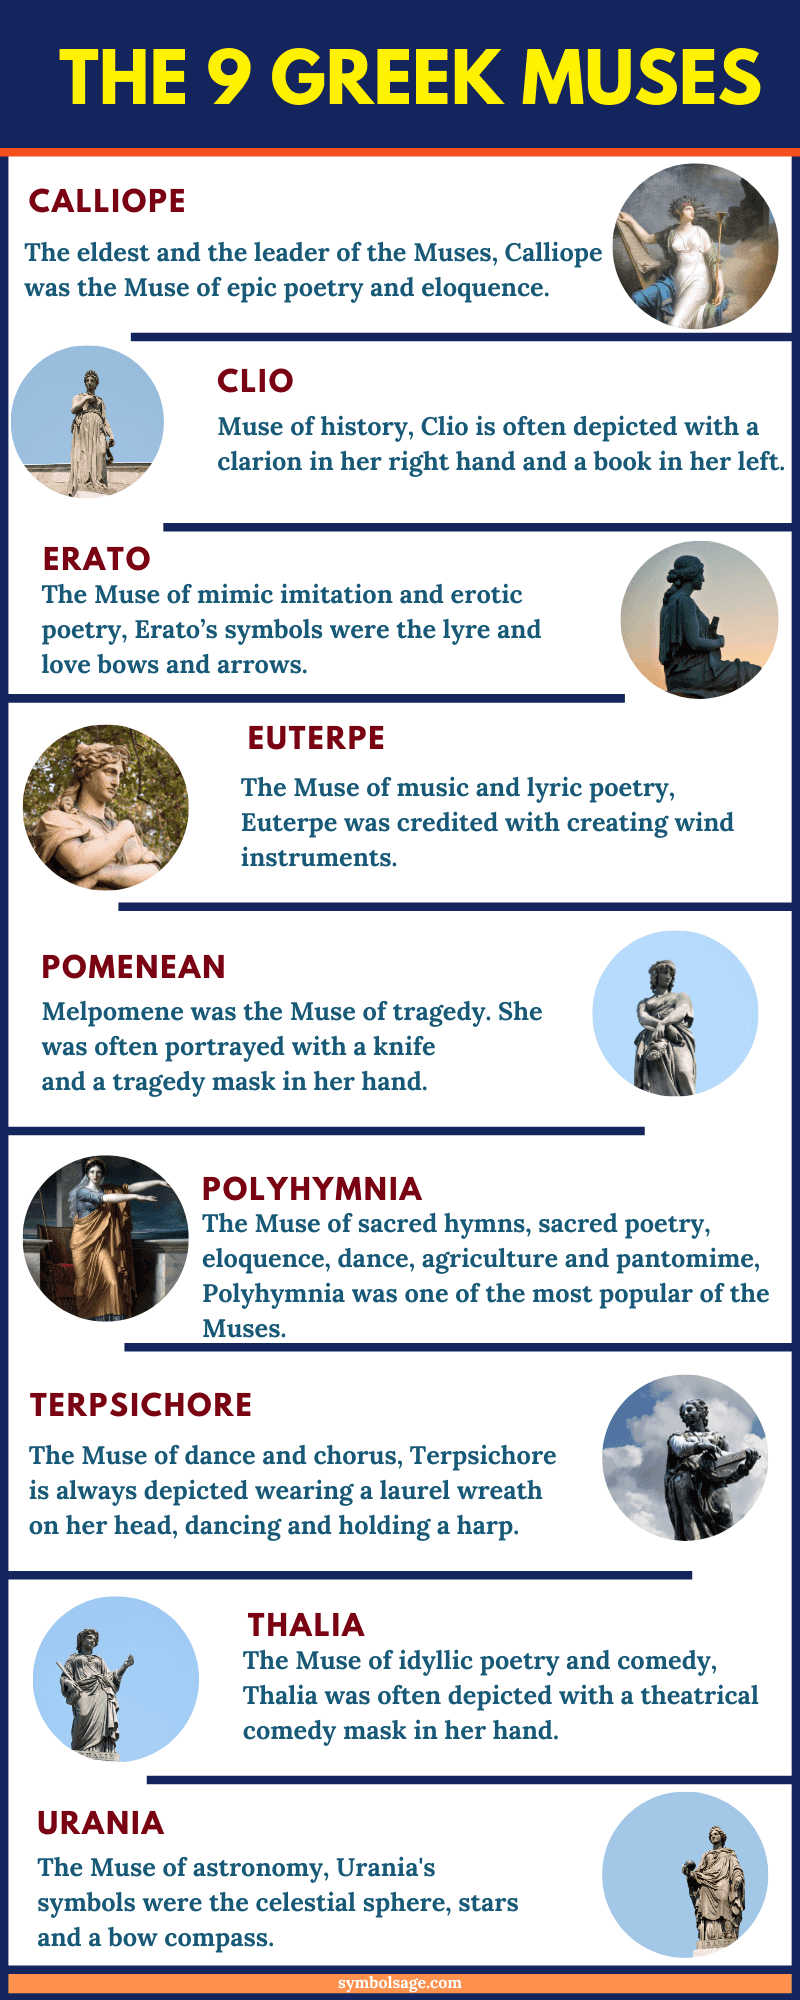 Nine younger Greek muses